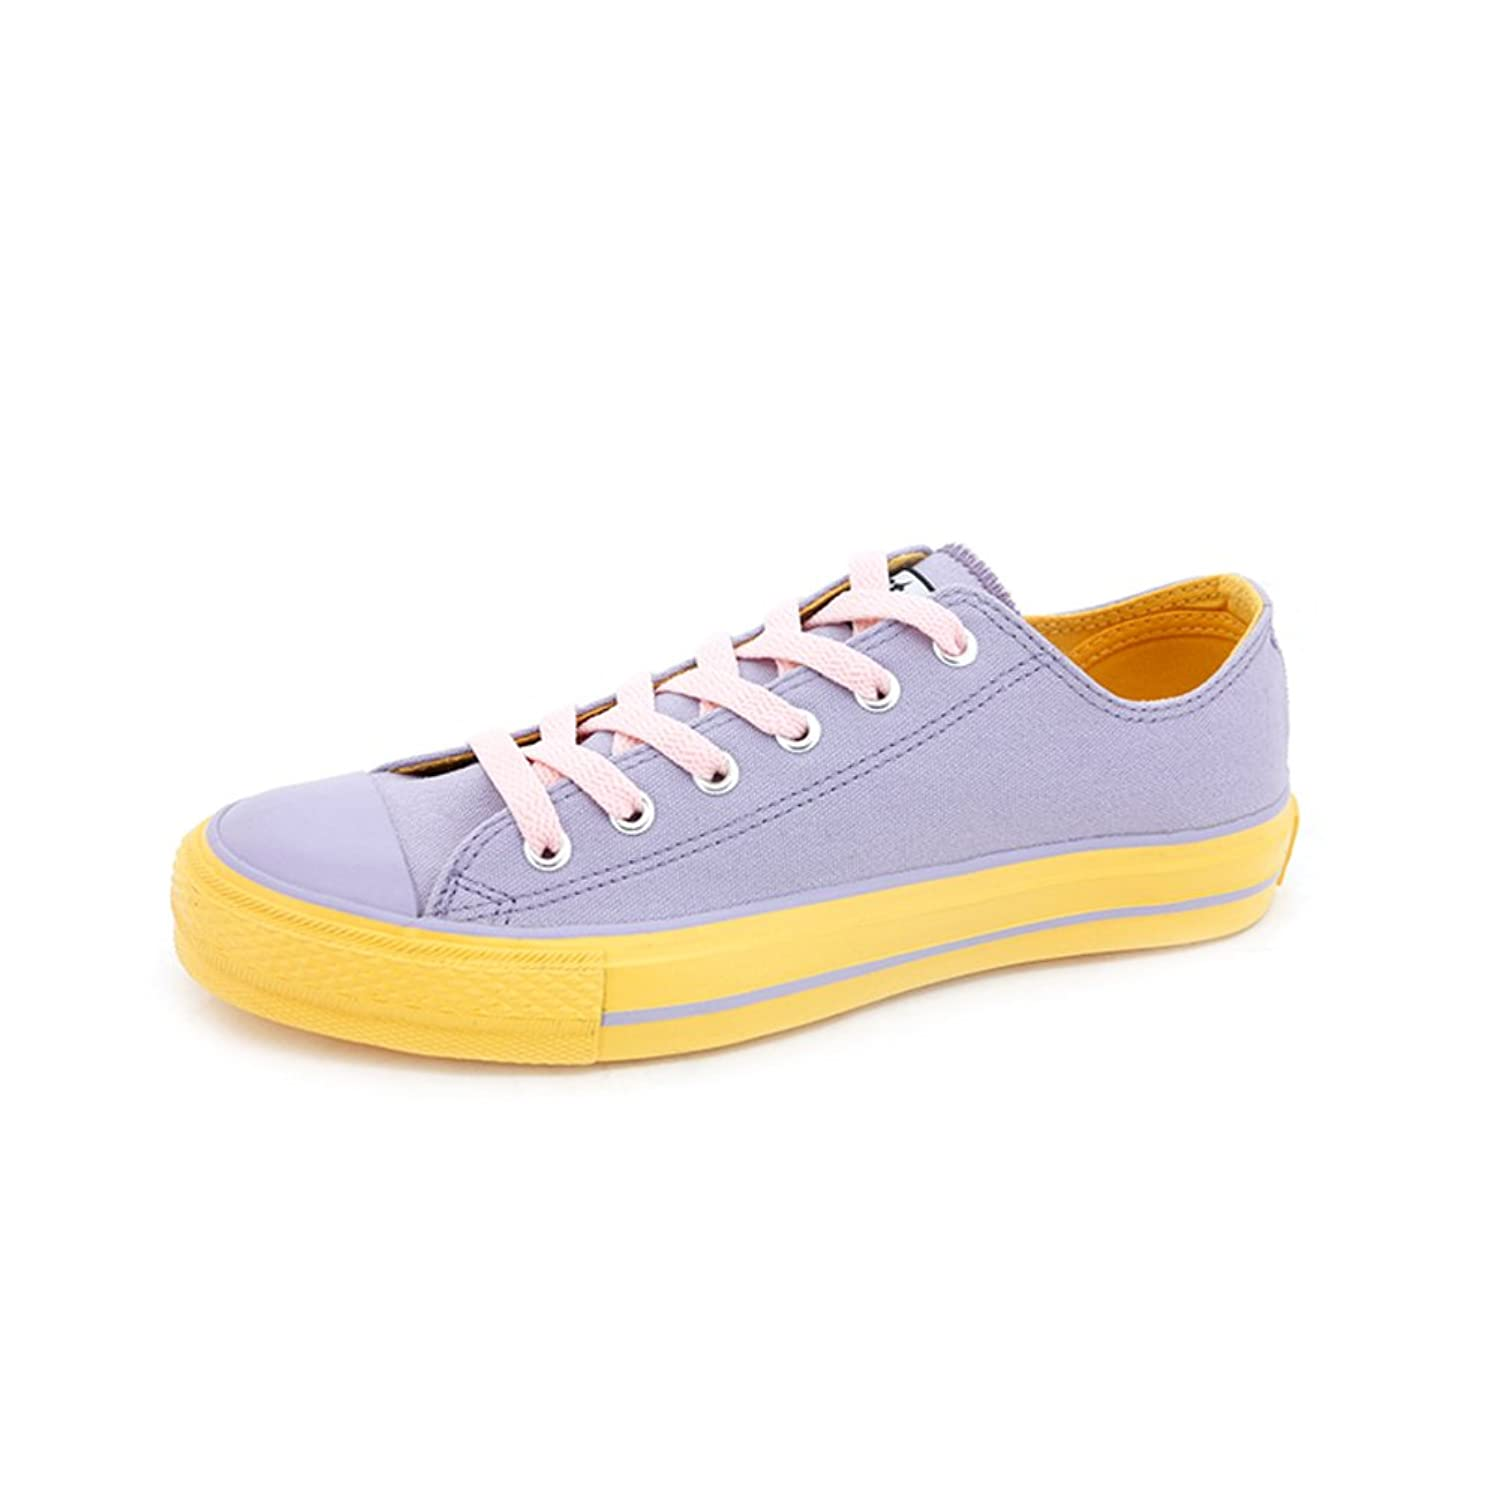 Fall low canvas shoes/Breathable casual shoes/Wild fashion shoe